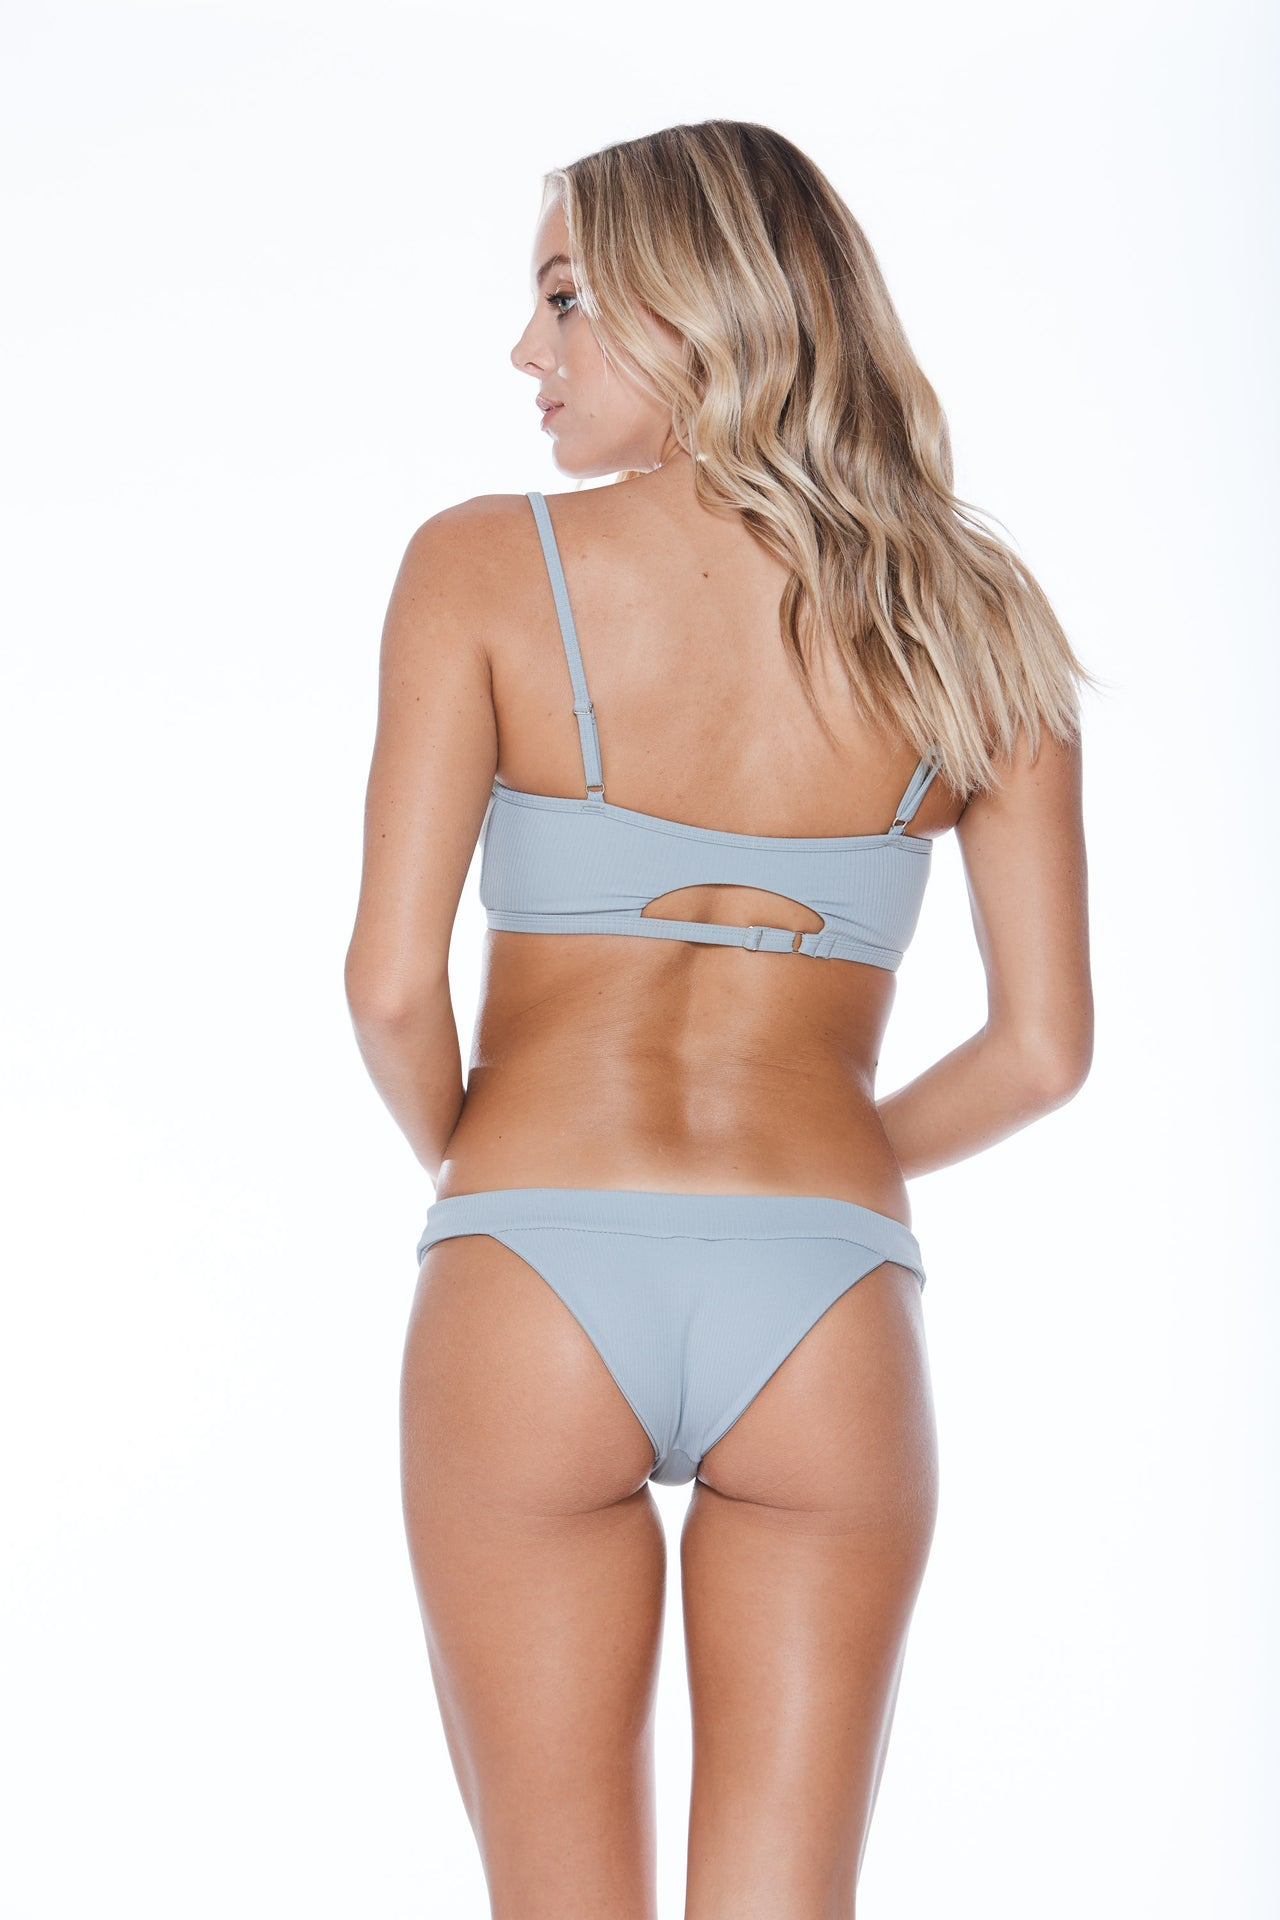 Banned FC  Bottom - Grey Grey Rib